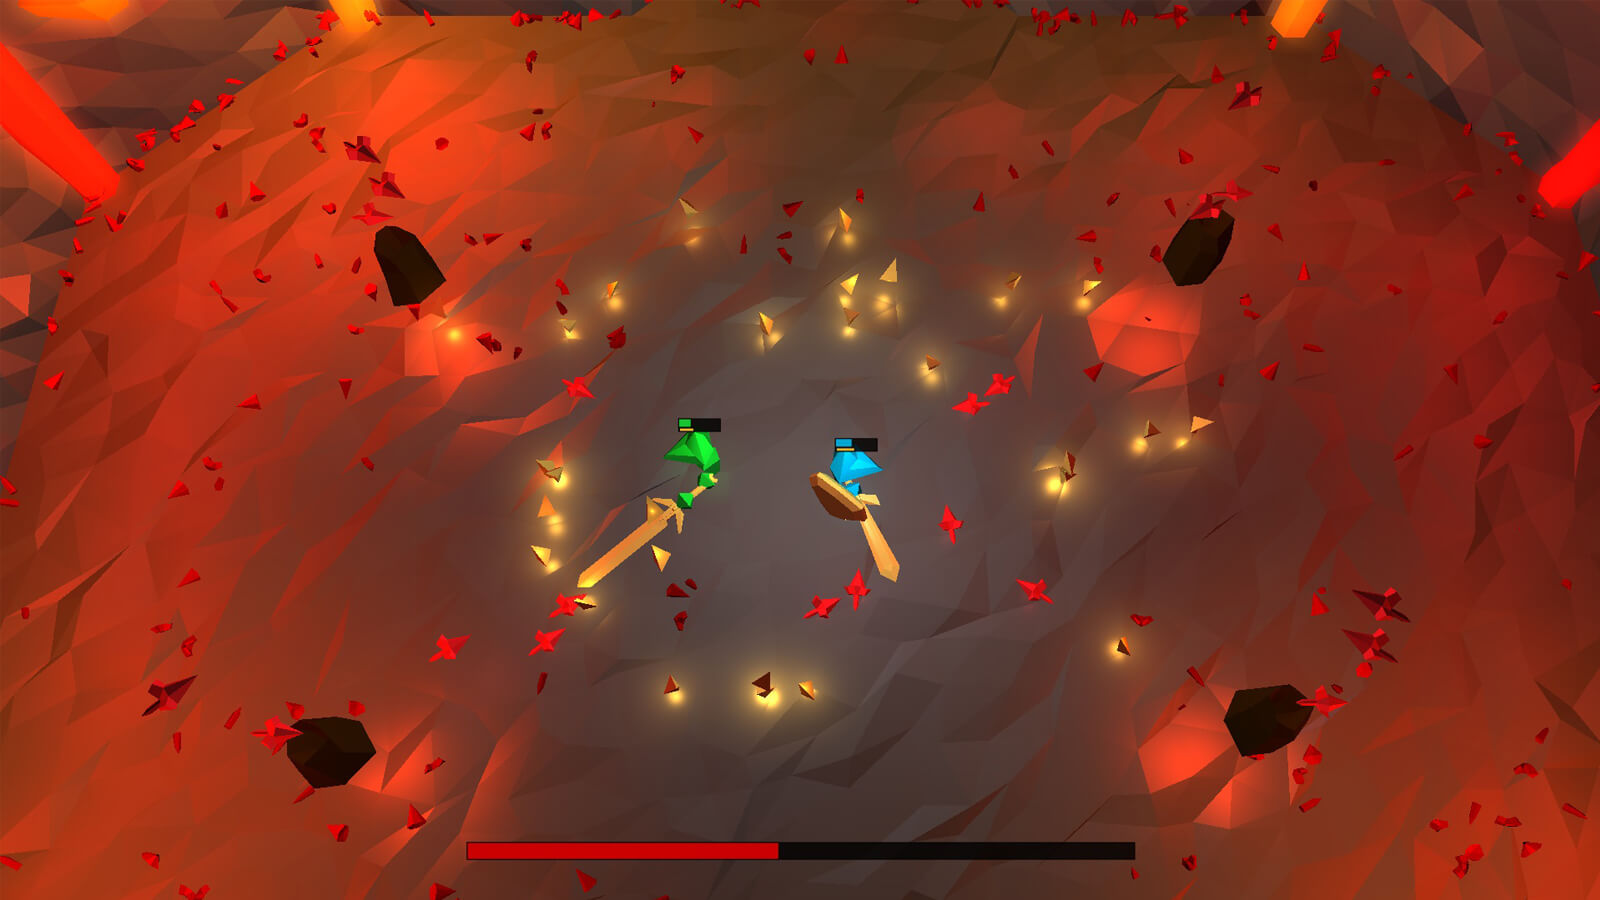 A red and blue player wield large swords in a red cavern.